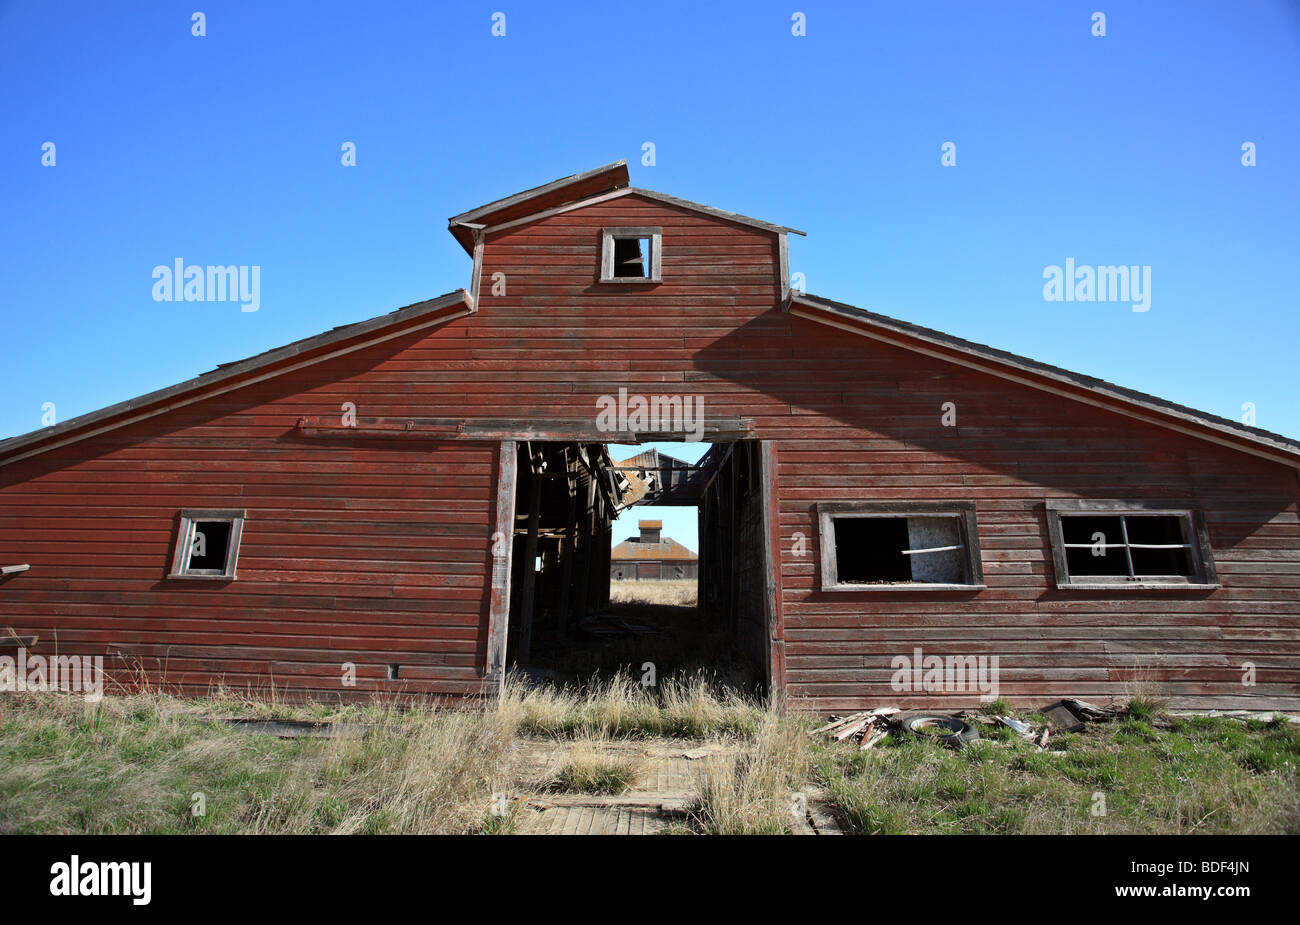 abandoned old rural stable farm building - Stock Image